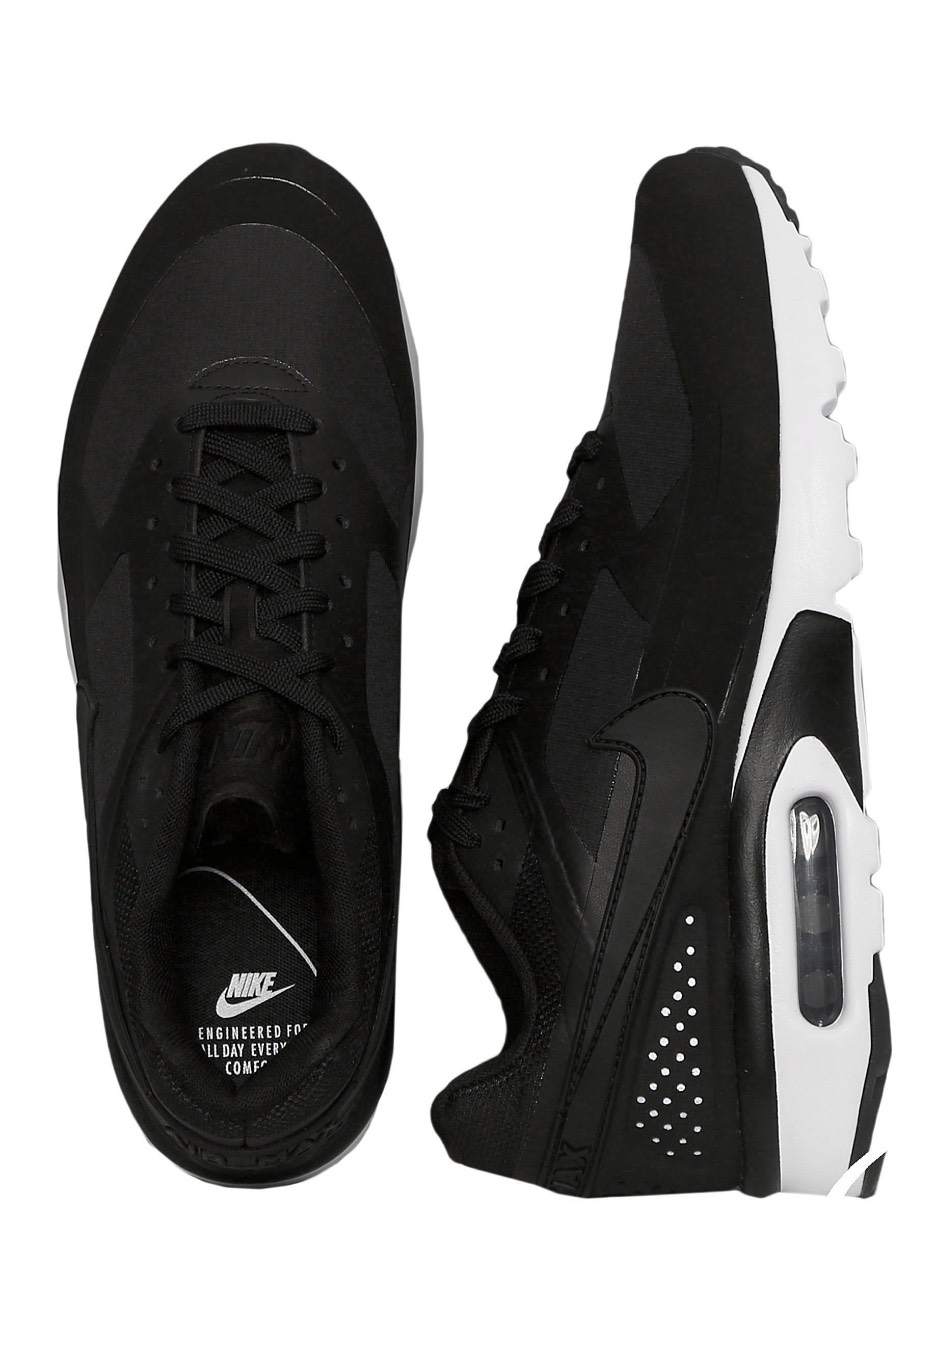 571c6ceec6 Nike - Air Max BW Ultra Black/Black/Black/White - Shoes - Impericon.com  Worldwide